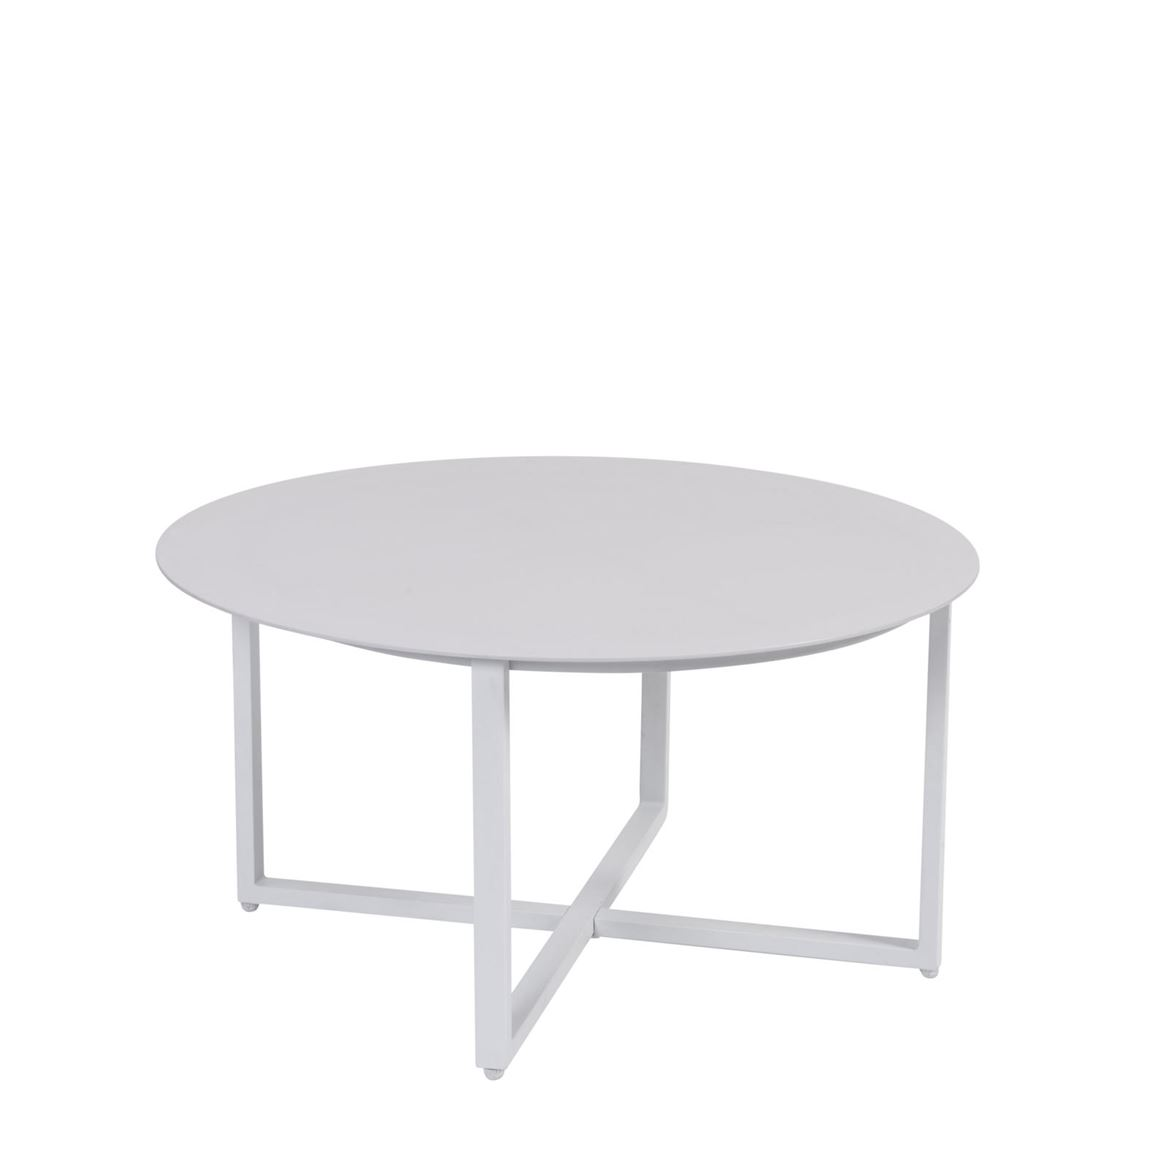 ARON Table lounge blanc H 40 cm; Ø 80 cm_aron-table-lounge-blanc-h-40-cm;-ø-80-cm